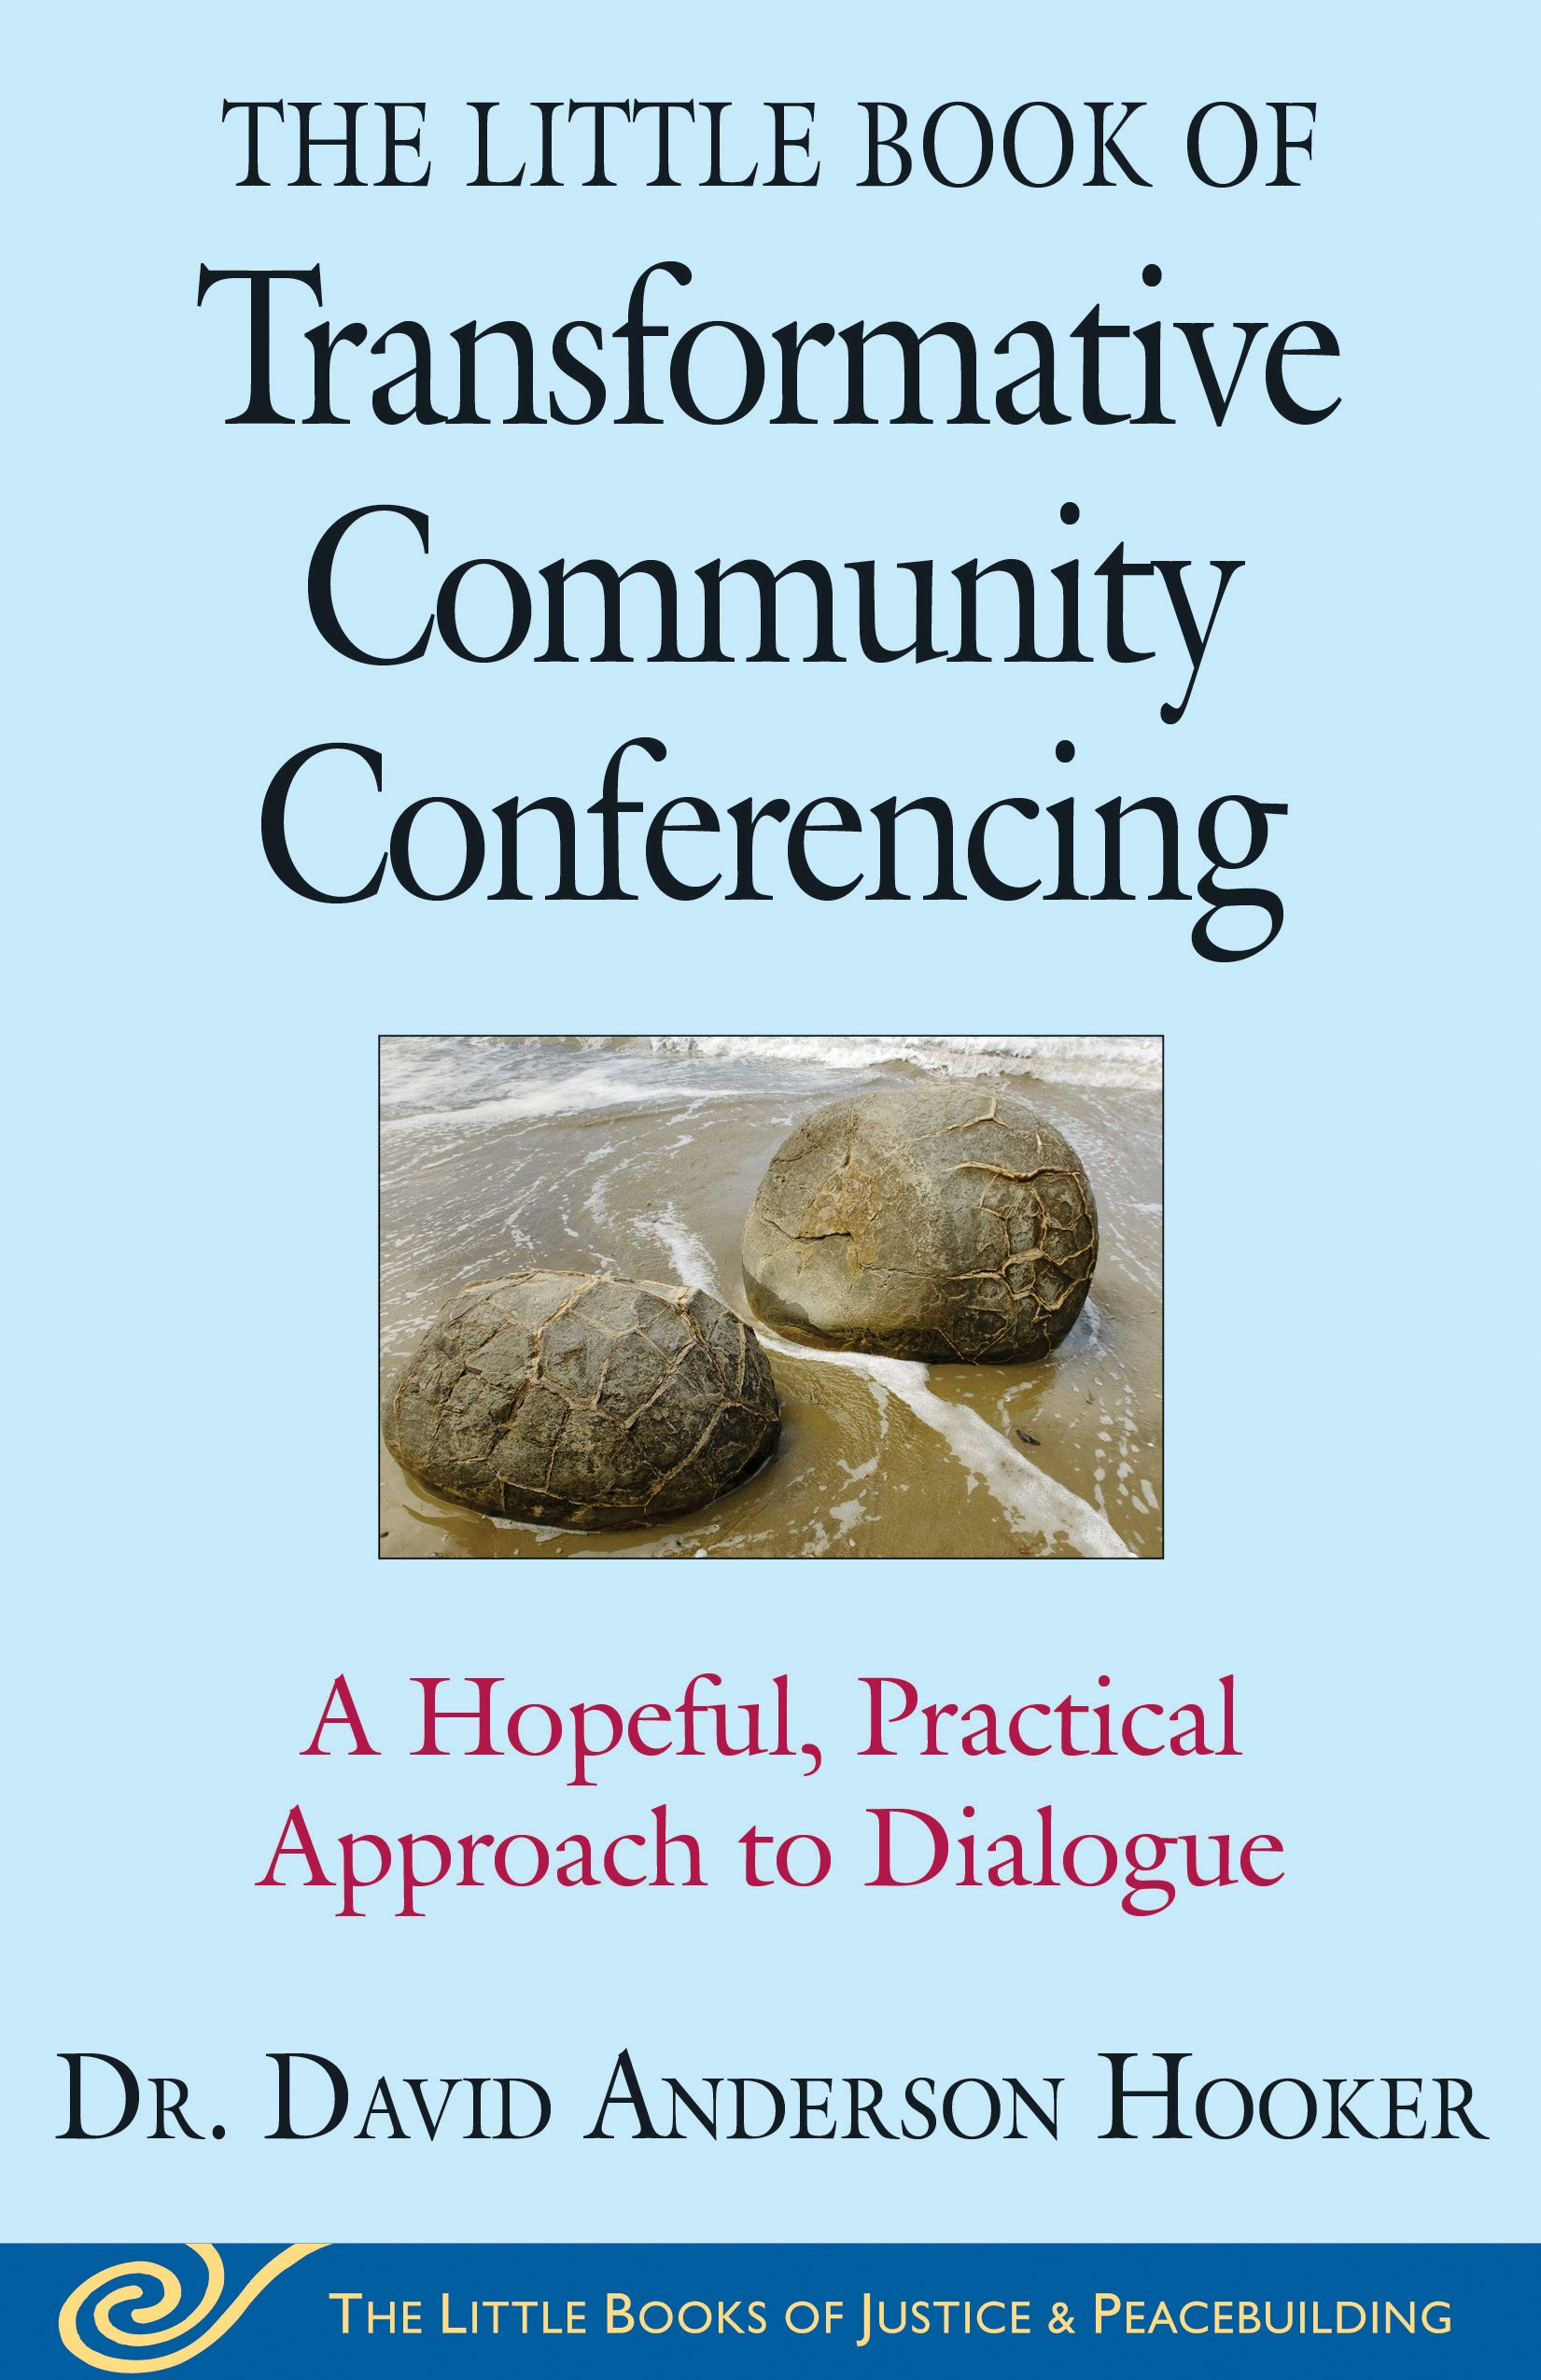 The Little Book of Transformative Community Conferencing: A Hopeful, Practical Approach to Dialogue (Justice and Peacebuilding) PDF